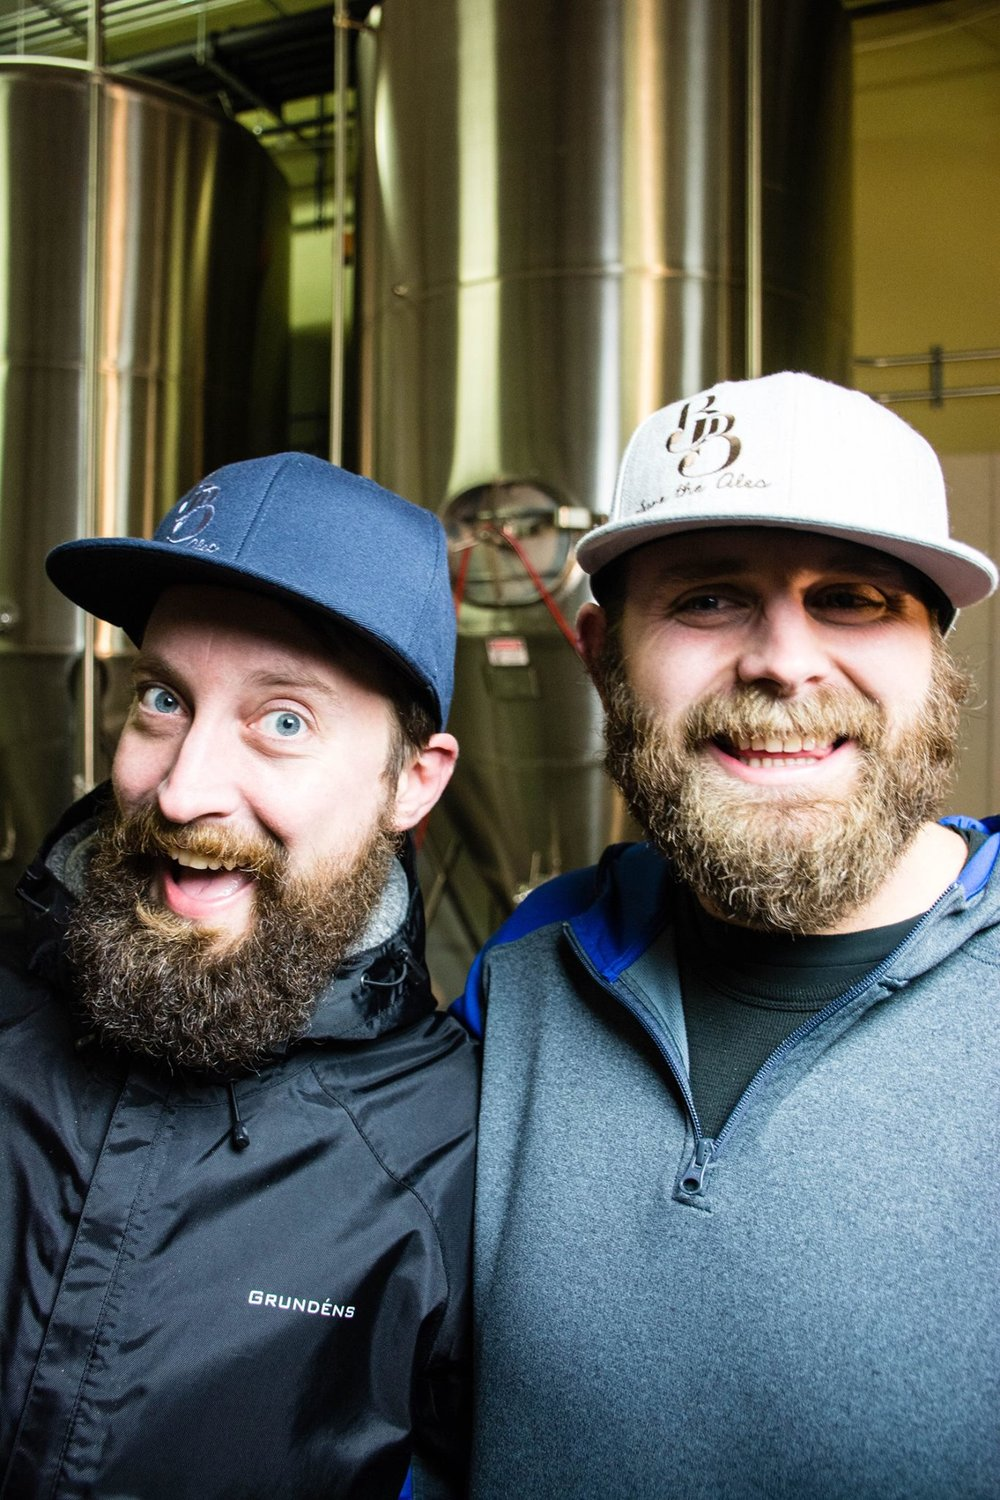 Fitted Caps   Take your pick, Matt (Distribution Manager) or Casey (Ops Manager).  Matt's wearing the navy cap with grey embroidery and Casey, the beige with light brown embroidery.